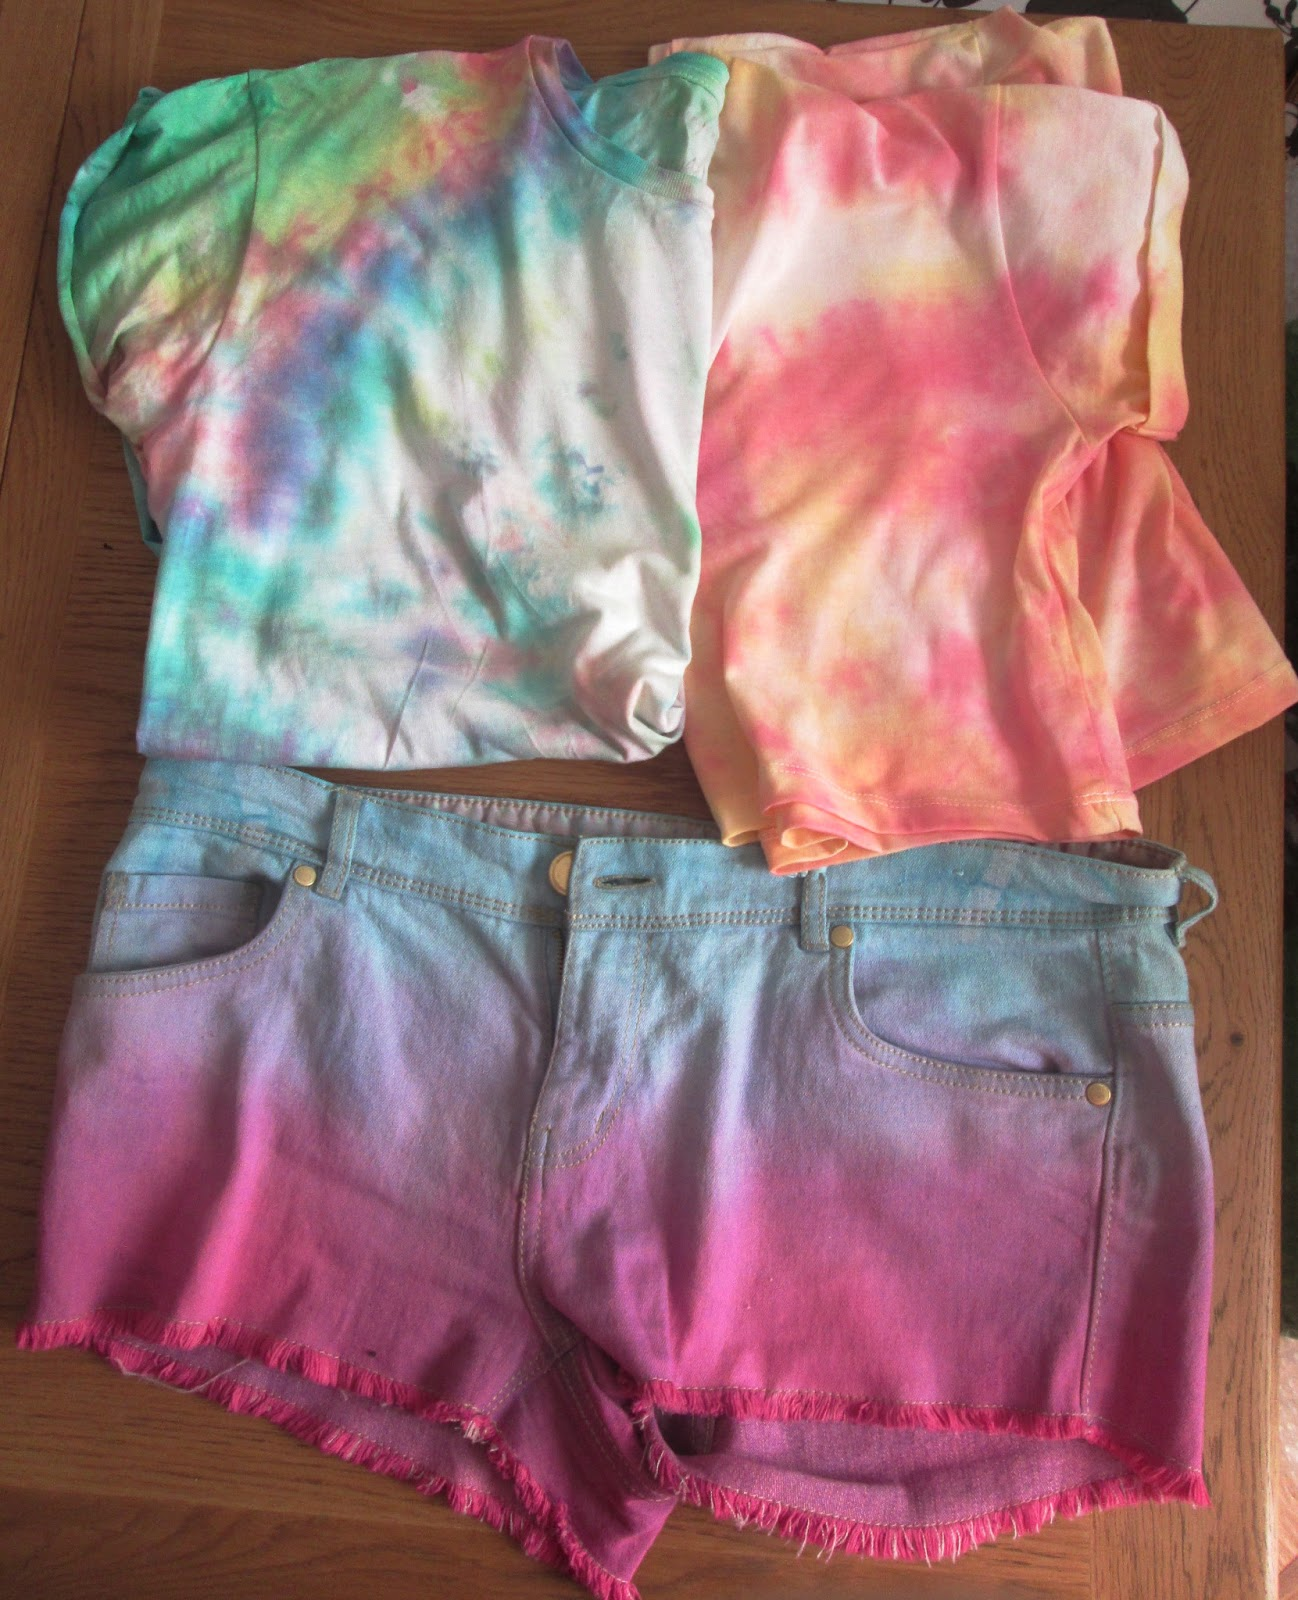 The prudent student diy tie dye shirts and ombre shorts tutorial diy tie dye shirts and ombre shorts tutorial baditri Gallery